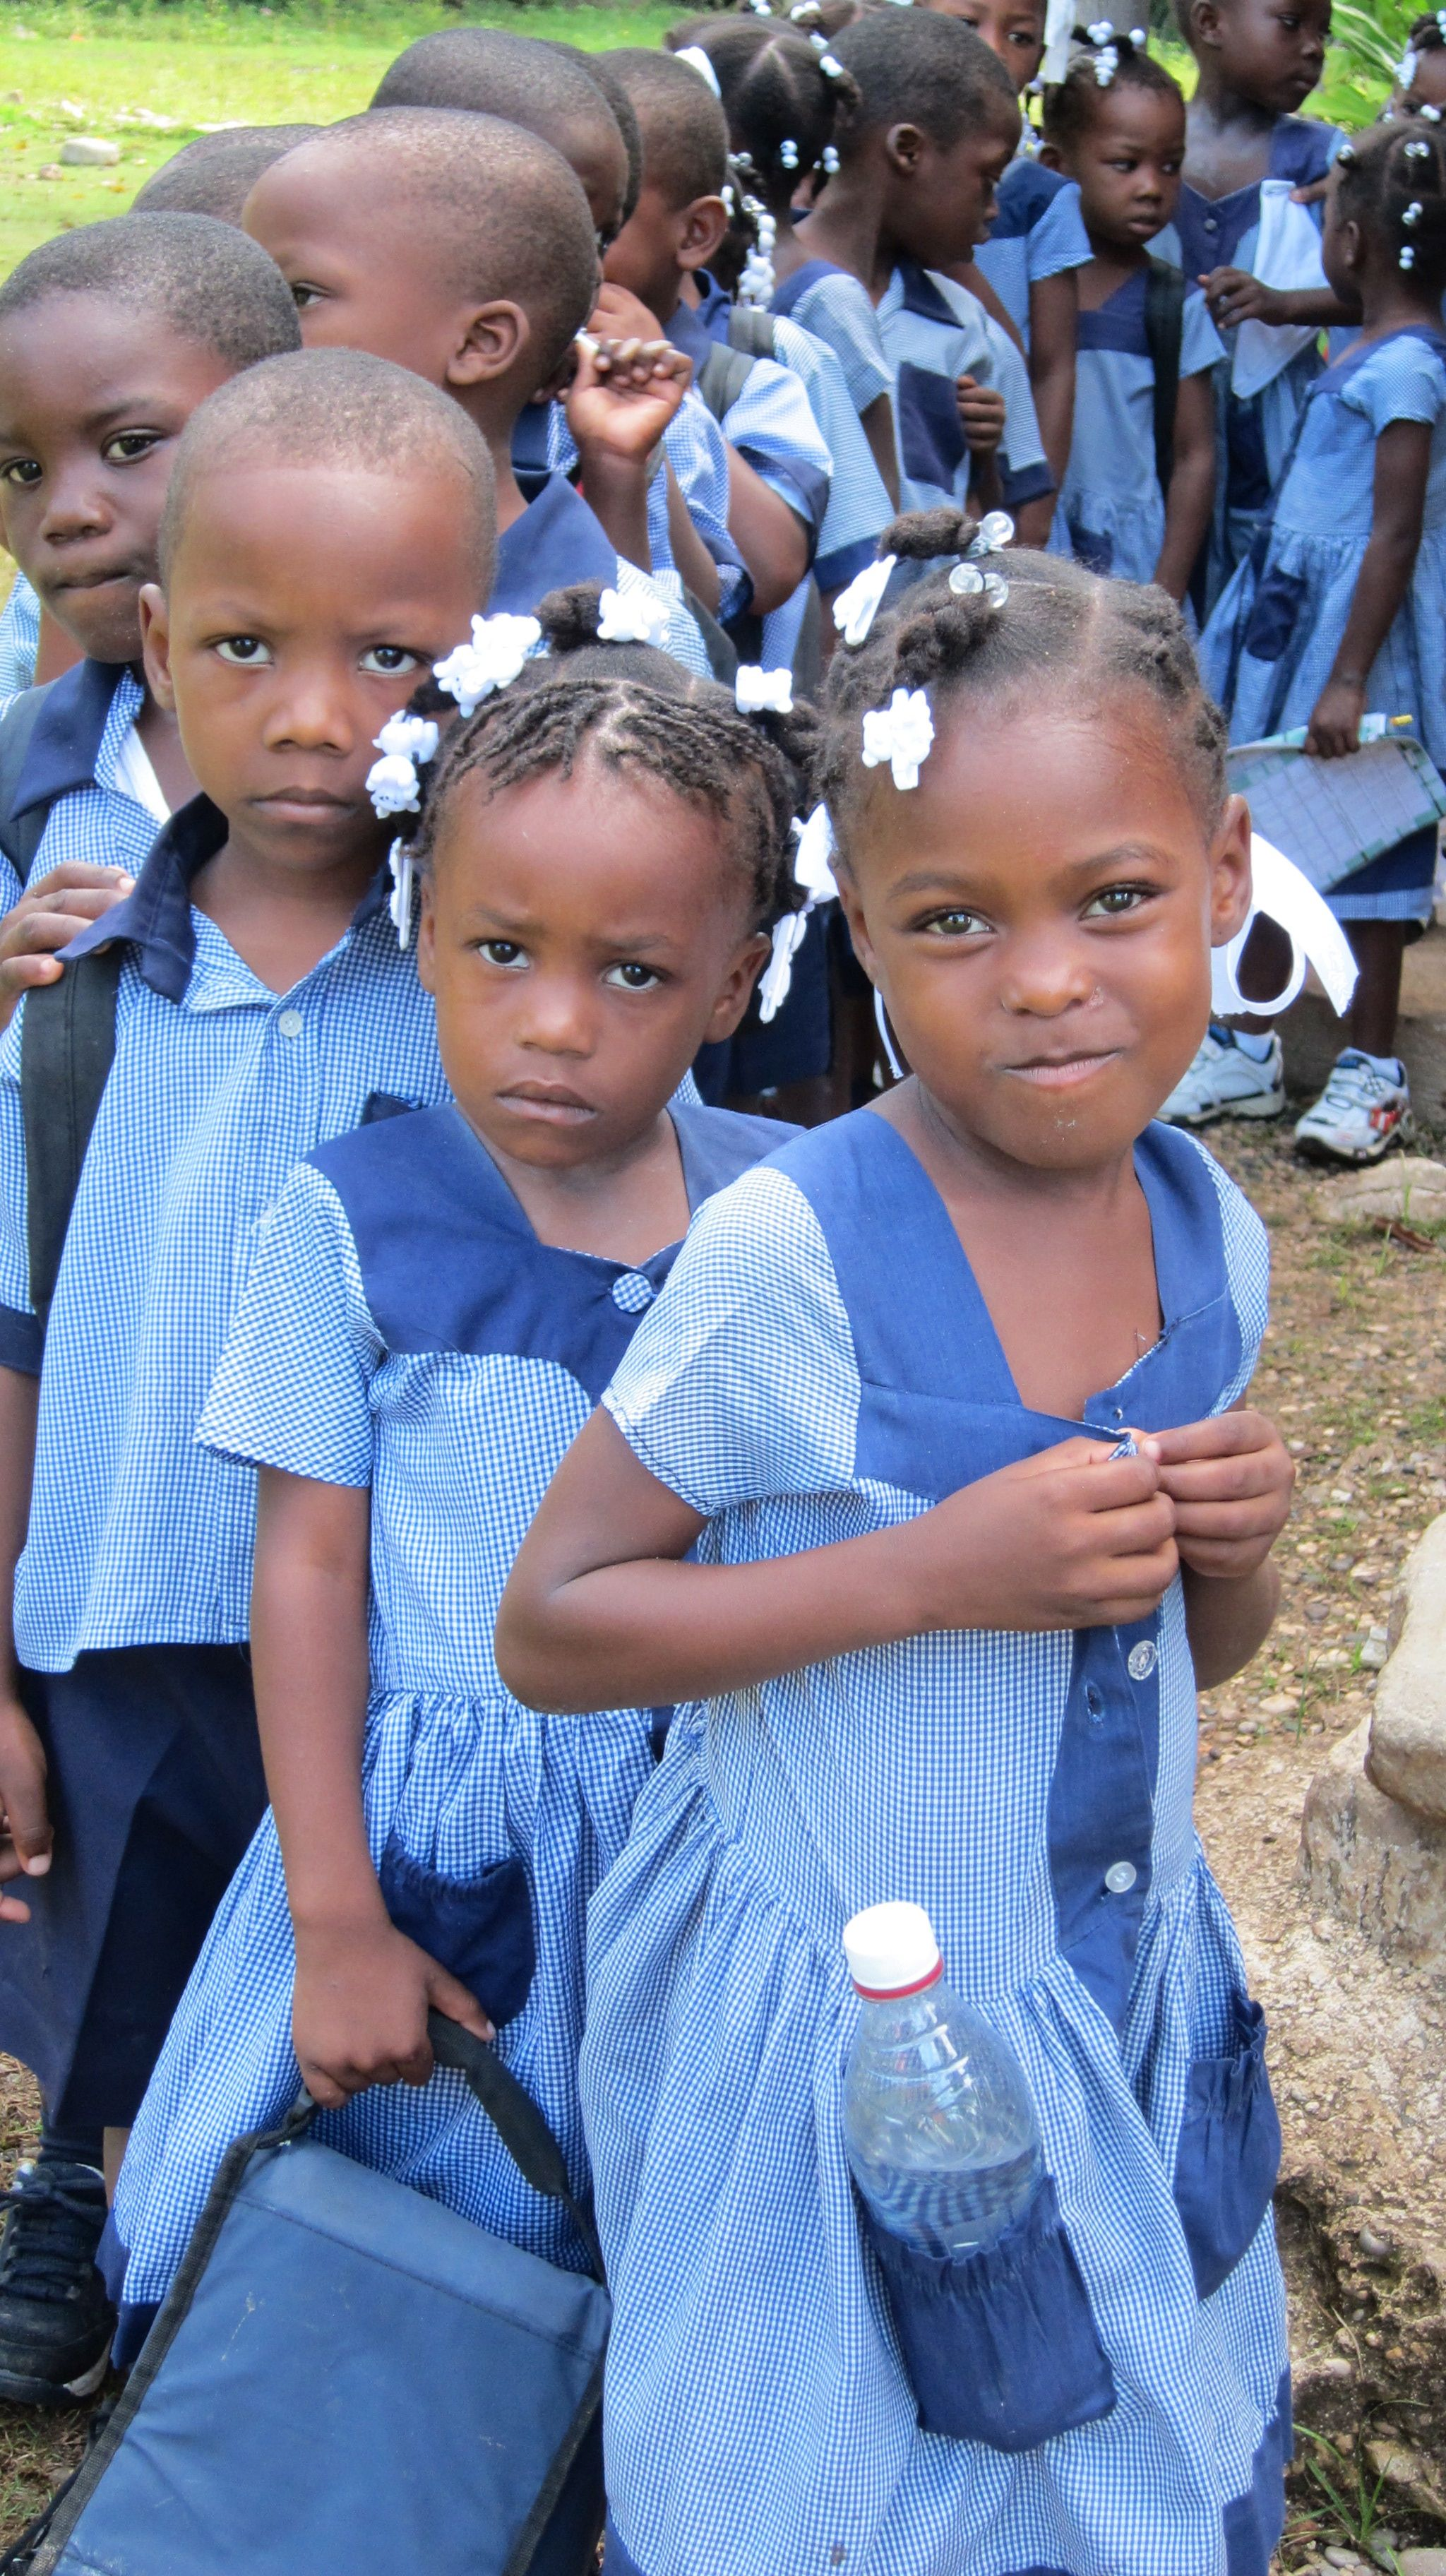 007 These children in Haiti are going to school. Most Haitian